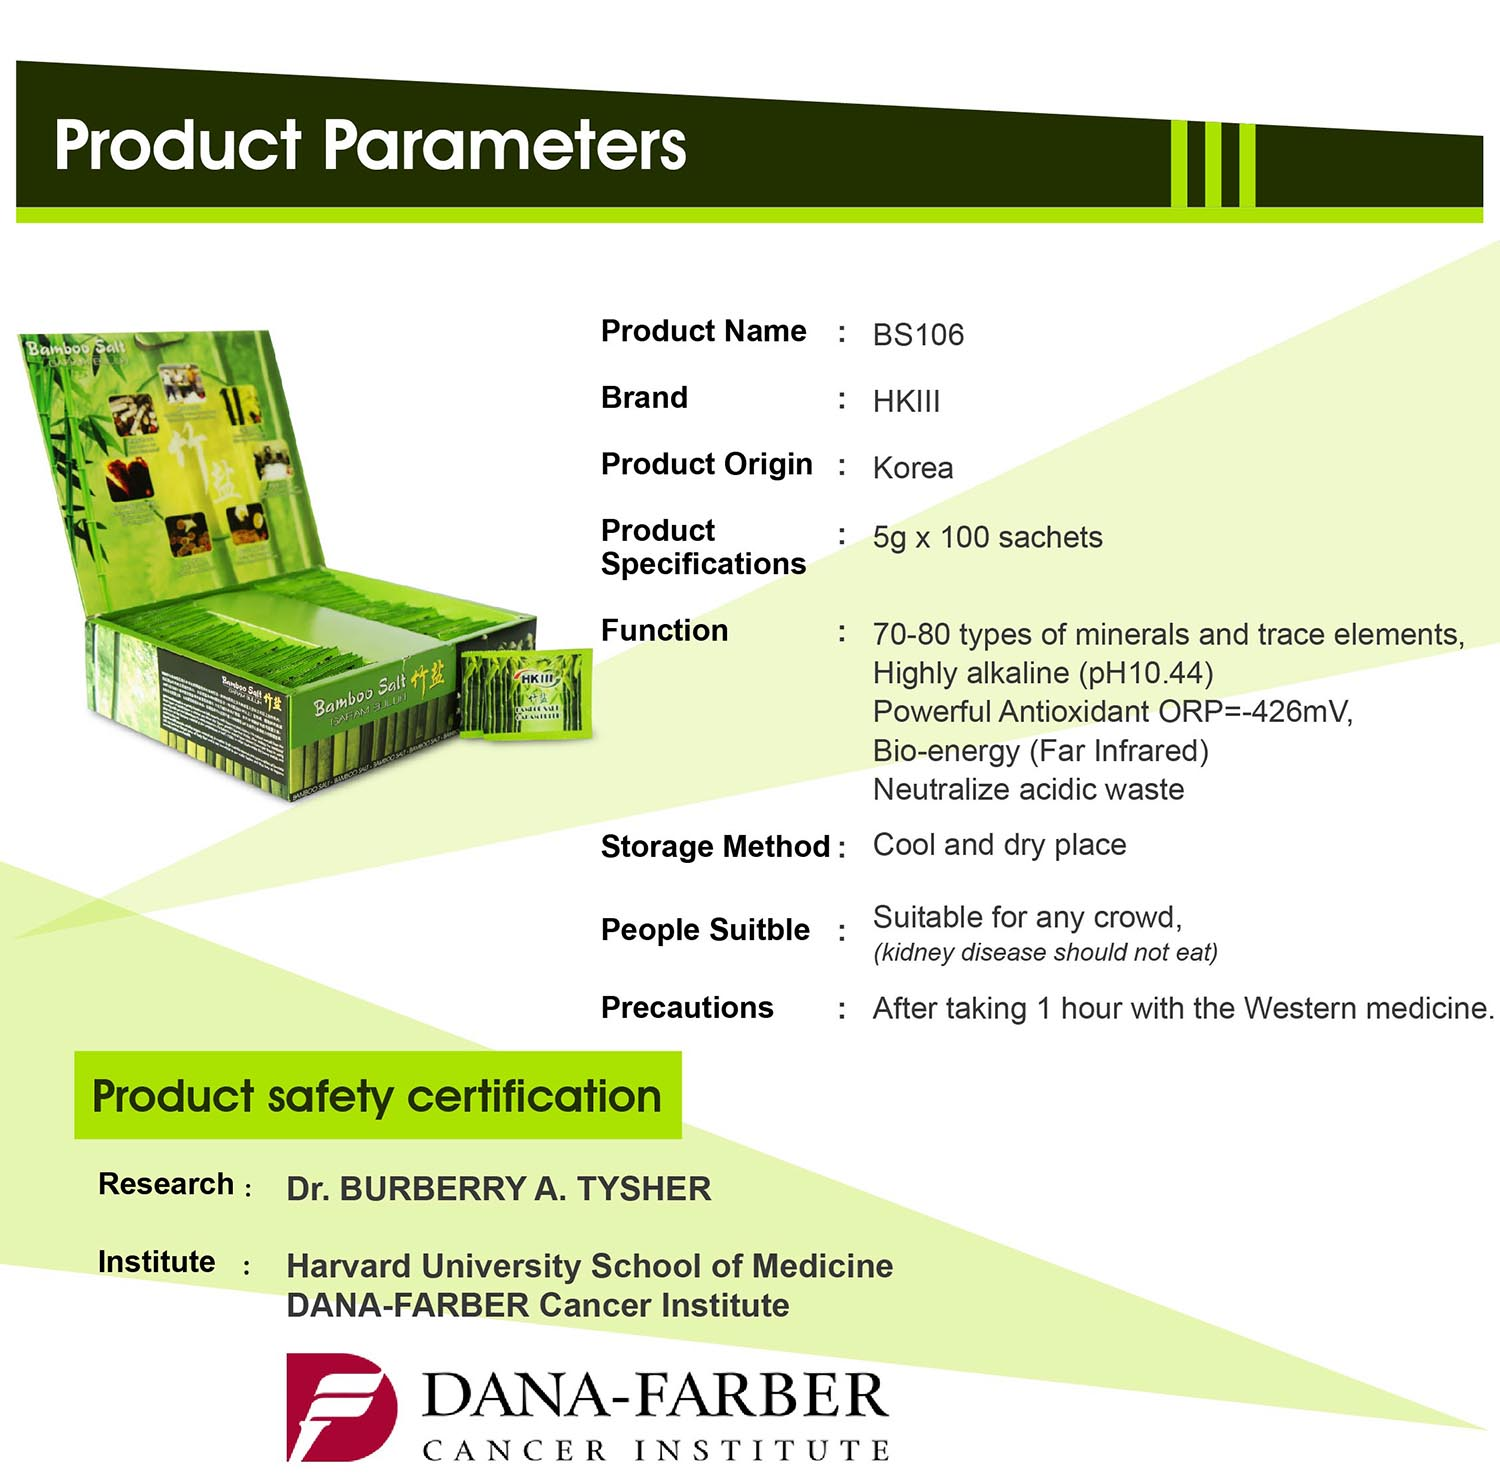 hk3 bamboo salt product parameters